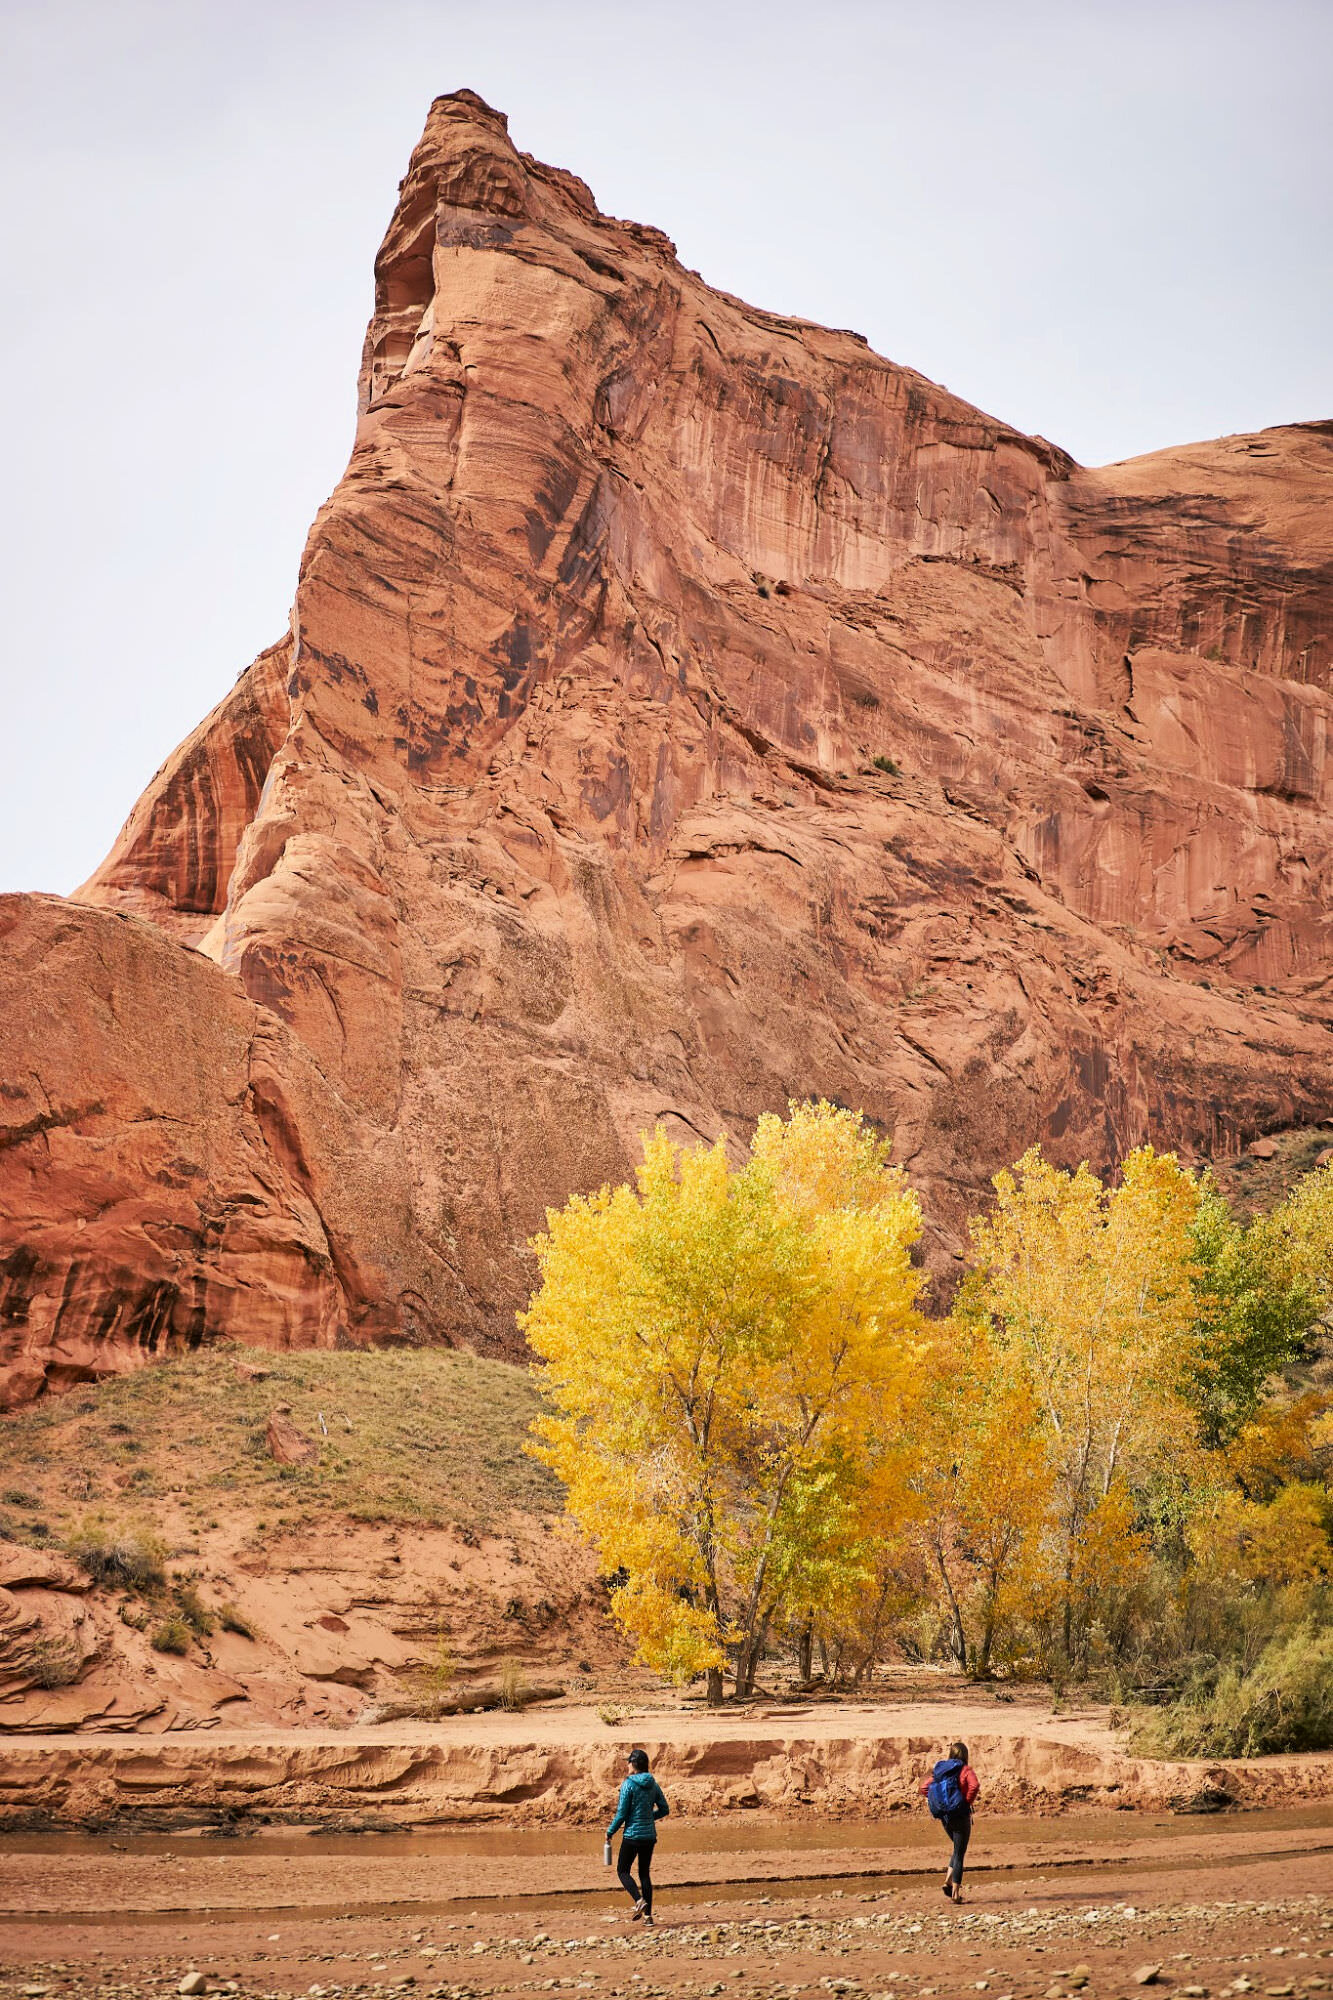 Backpacking in Coyote Gulch is incredible! This complete guide will walk you through everything you need to know when planning a backpacking trip to Coyote Gulch in Utah. www.amandaoutside.com